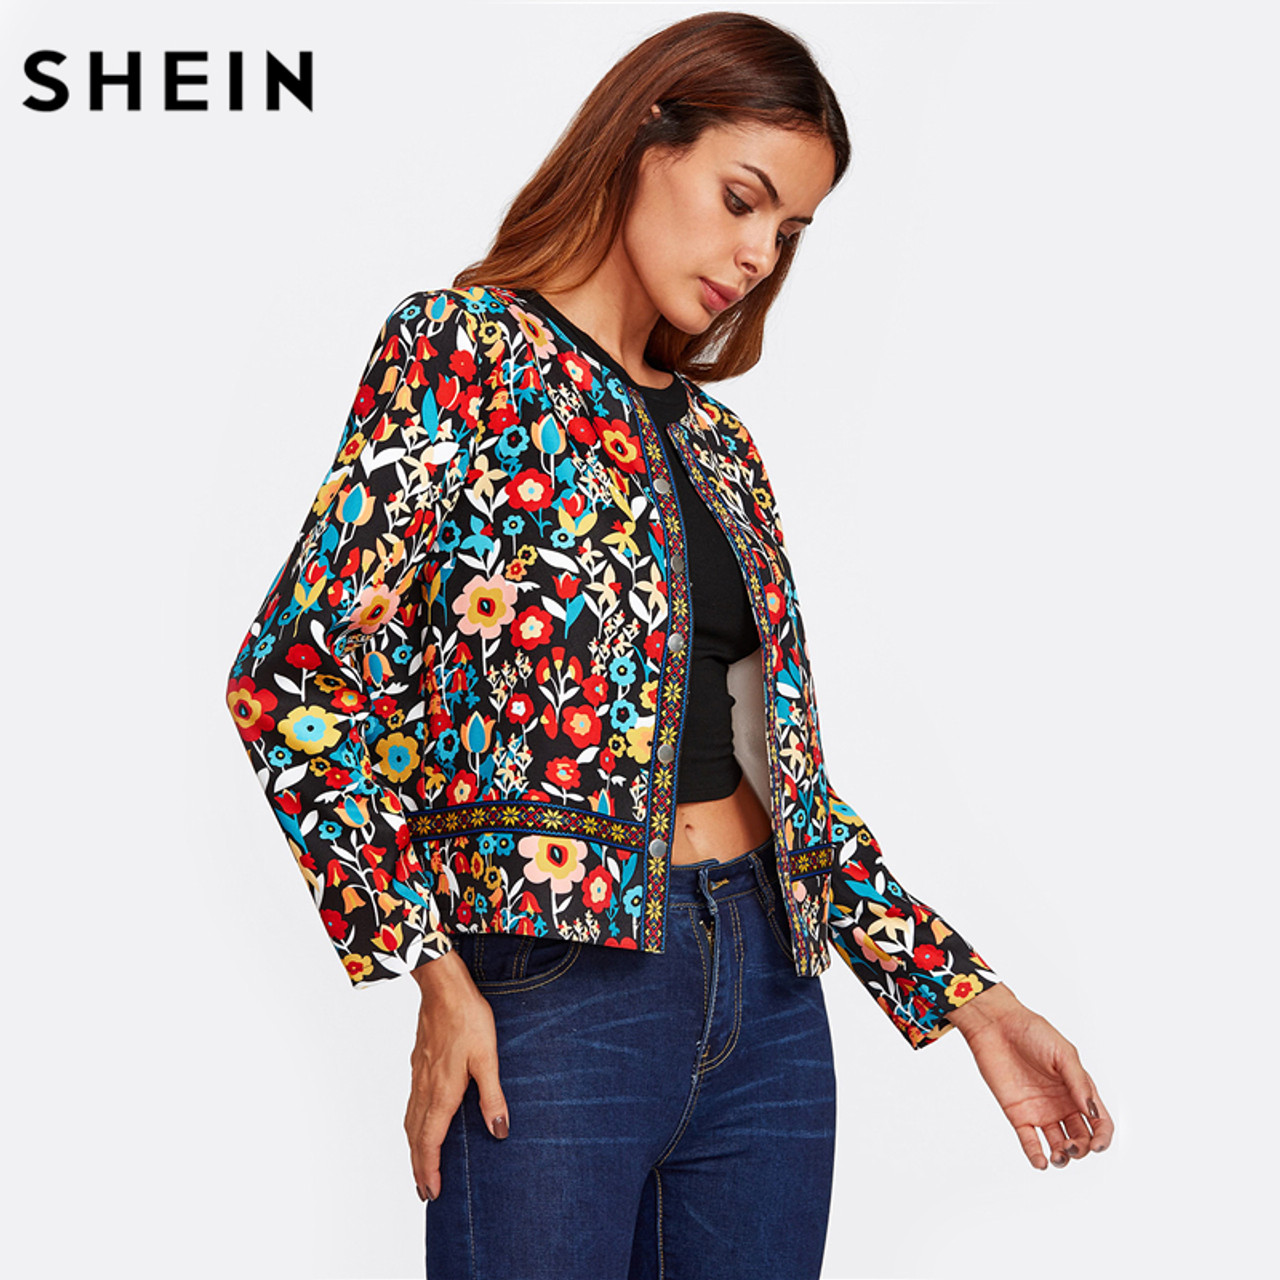 4d938a8355 ... SHEIN Press Button Placket Botanical Jacket Autumn Jacket for Women  Multicolor Collarless Single Breasted Elegant Jacket ...